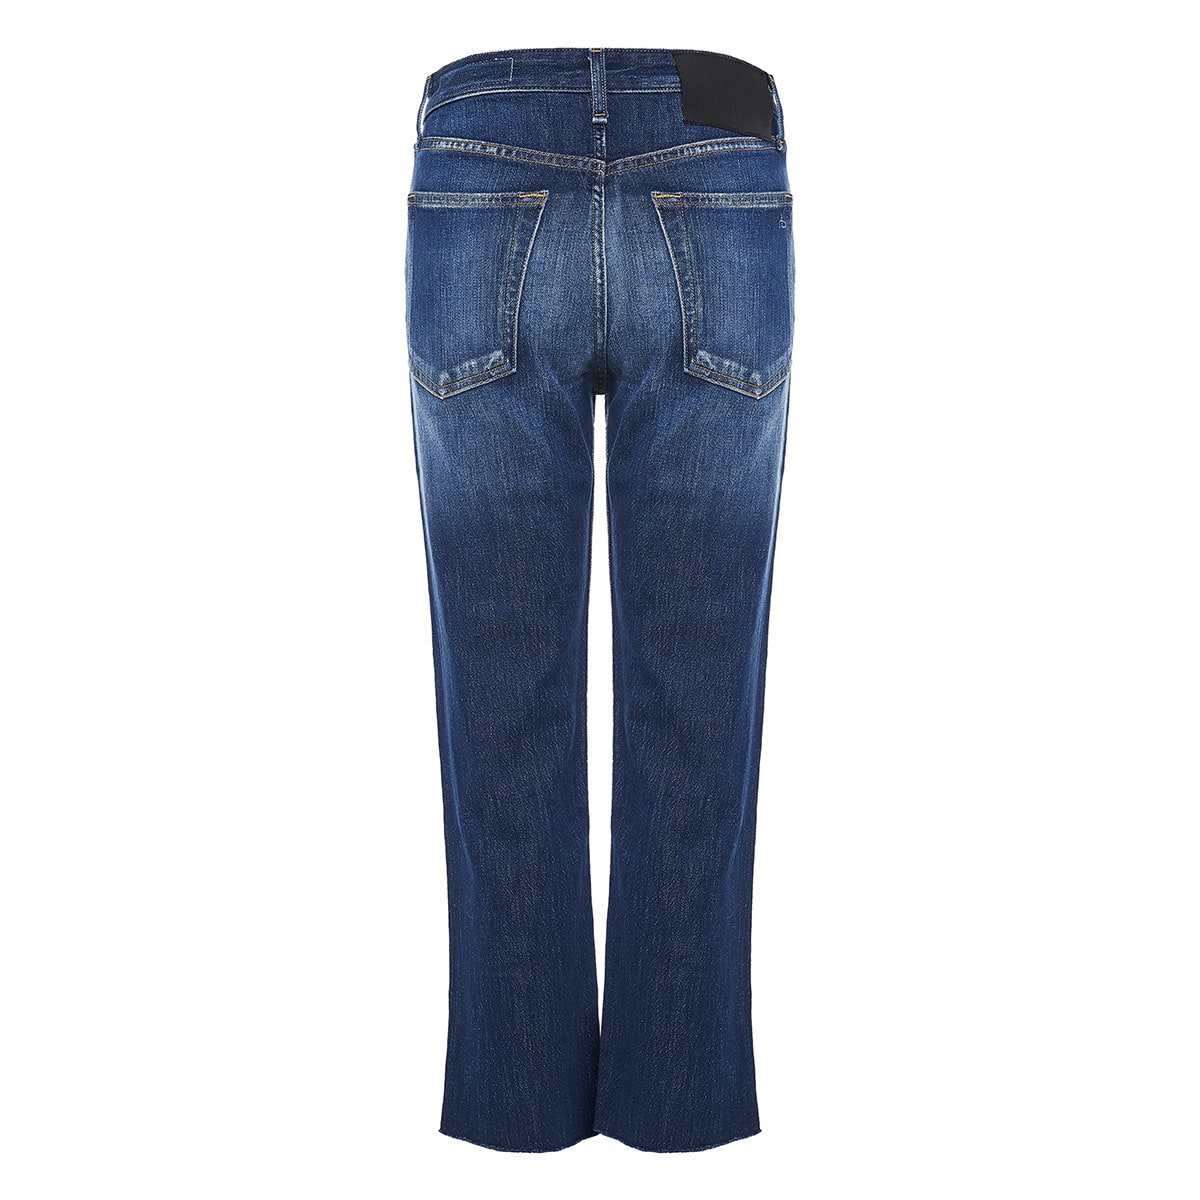 Maya five-pocket distressed jeans